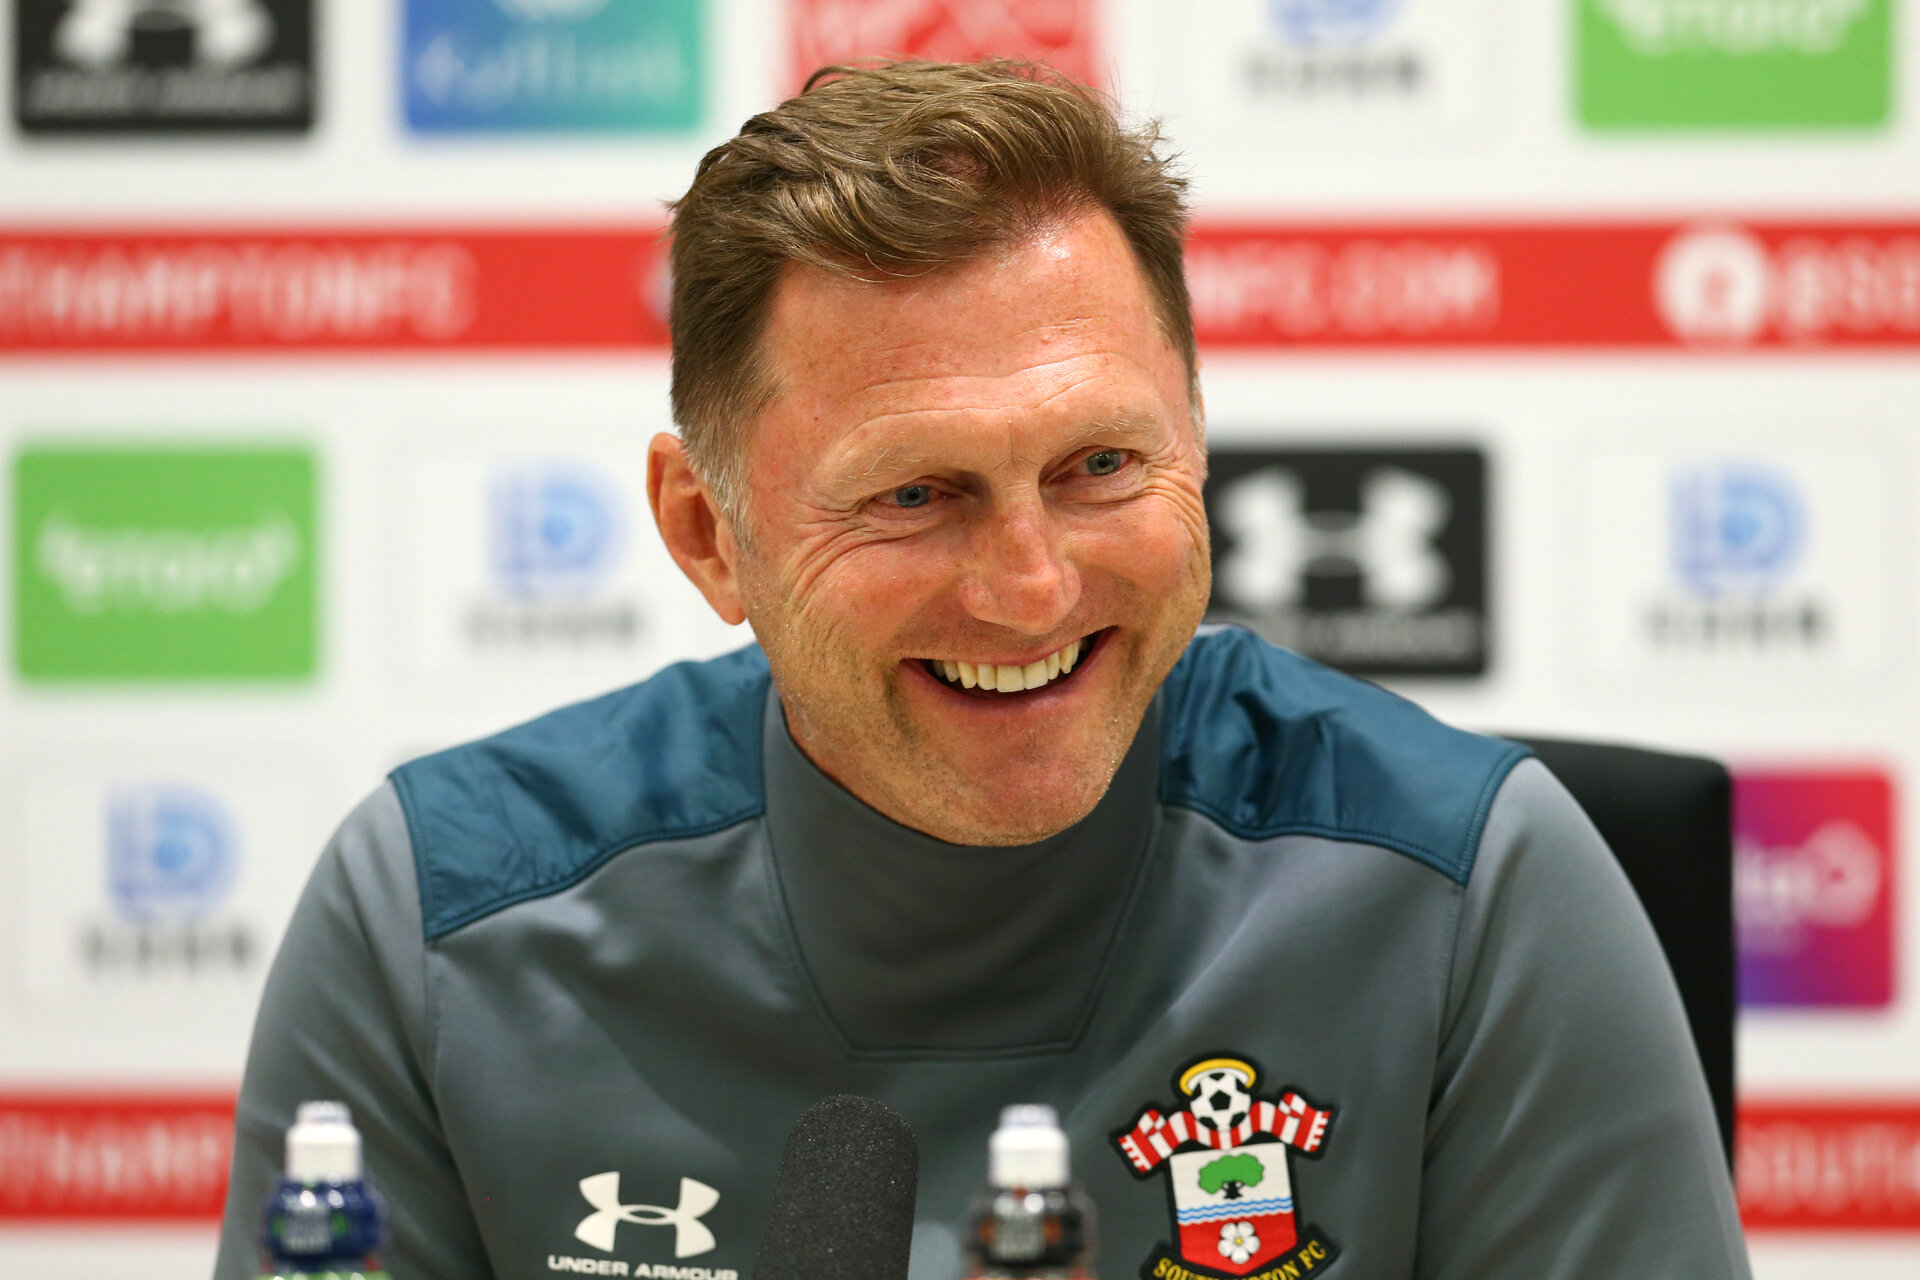 SOUTHAMPTON, ENGLAND - AUGUST 08: Ralph Hasenhuttl during a Southampton FC Press conference pictured at Staplewood Complex on August 08, 2019 in Southampton, England. (Photo by James Bridle - Southampton FC/Southampton FC via Getty Images) (Photo by James Bridle - Southampton FC/Southampton FC via Getty Images)